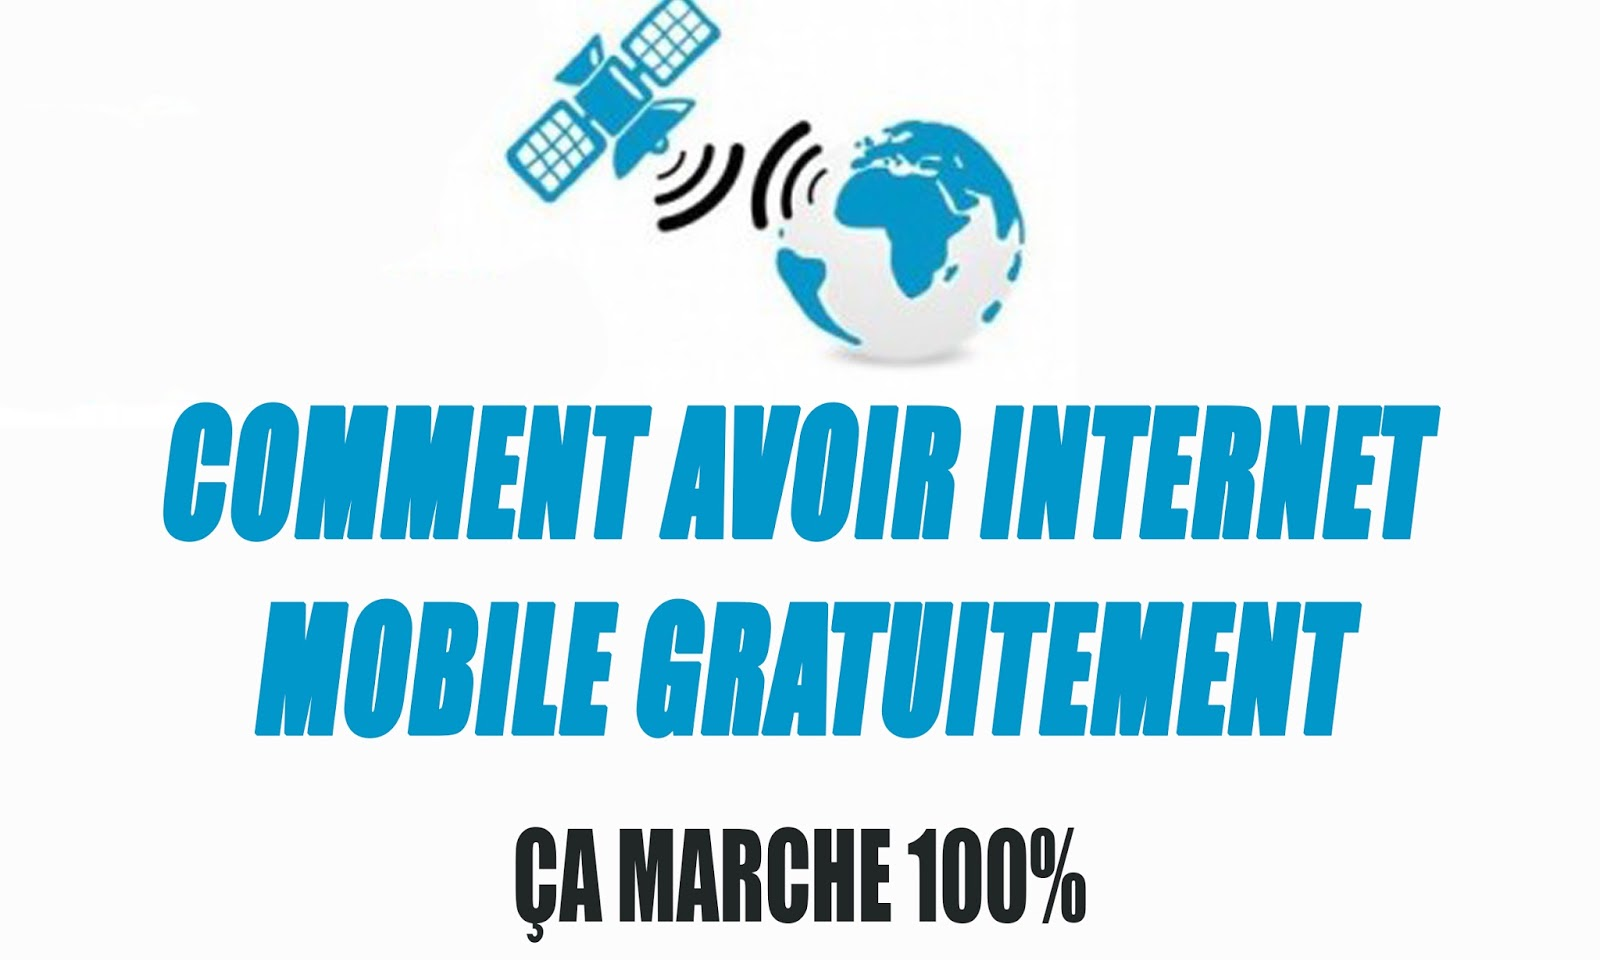 comment avoir la connexion internet gratuit 2017 2018 a marche 100 shmoney geek. Black Bedroom Furniture Sets. Home Design Ideas